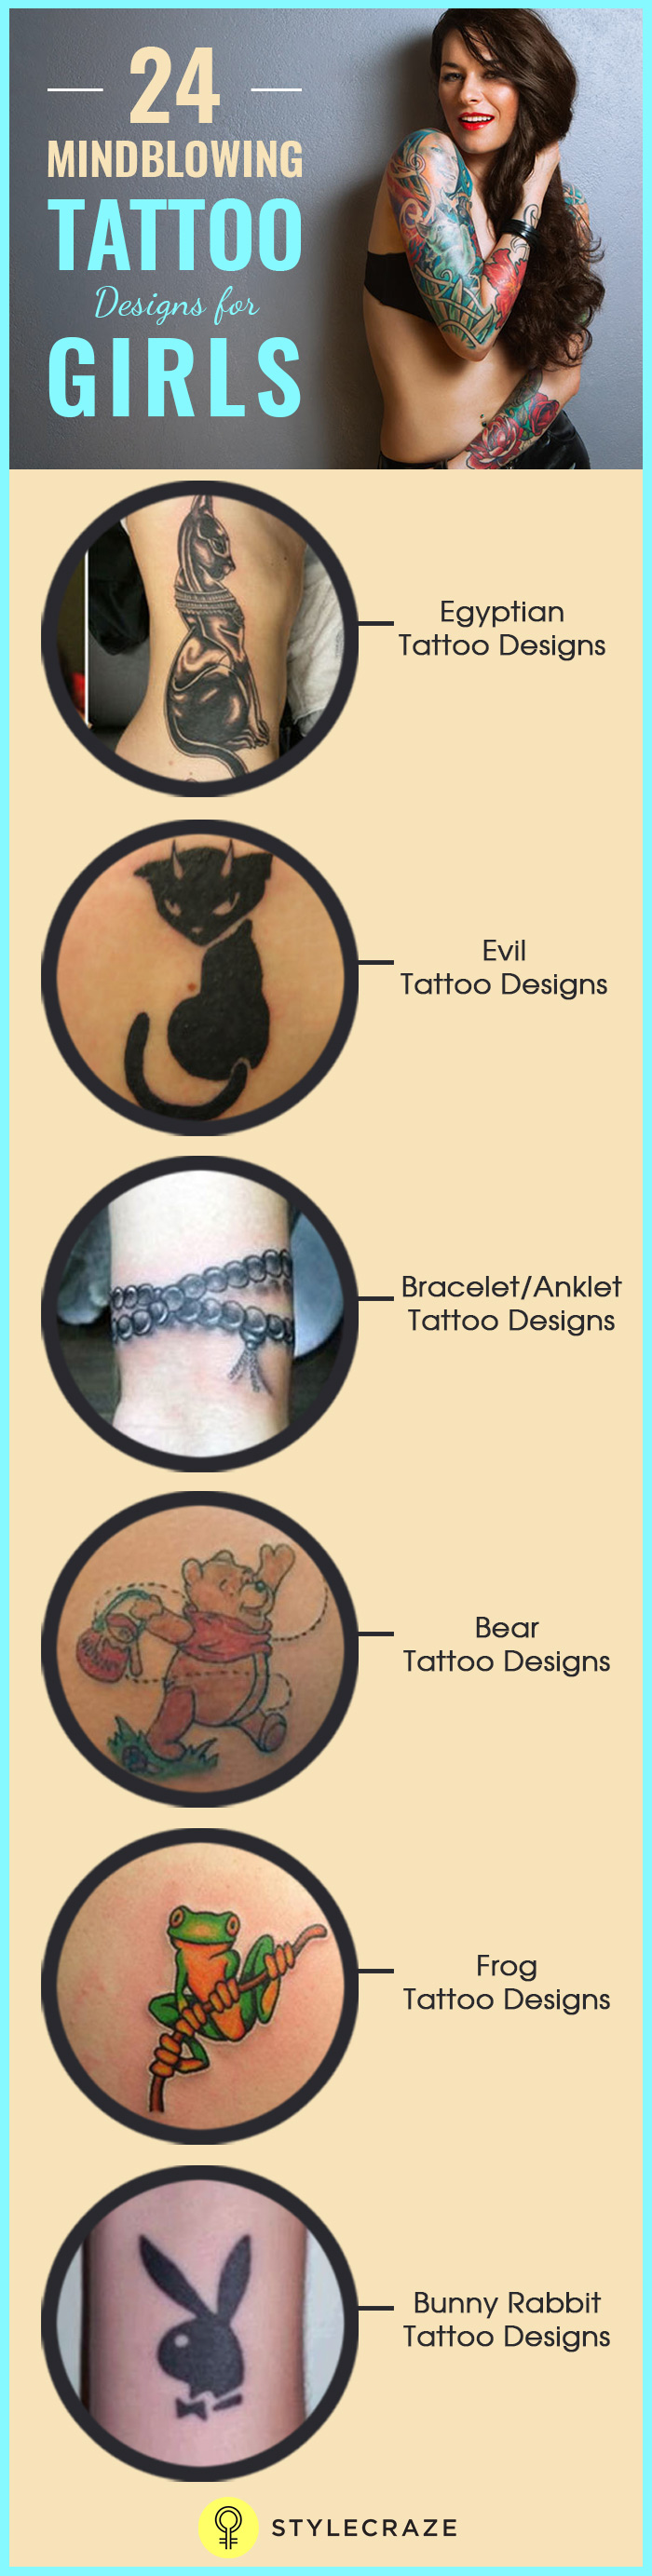 Mindblowing-Tattoo-Designs-For-Girls,